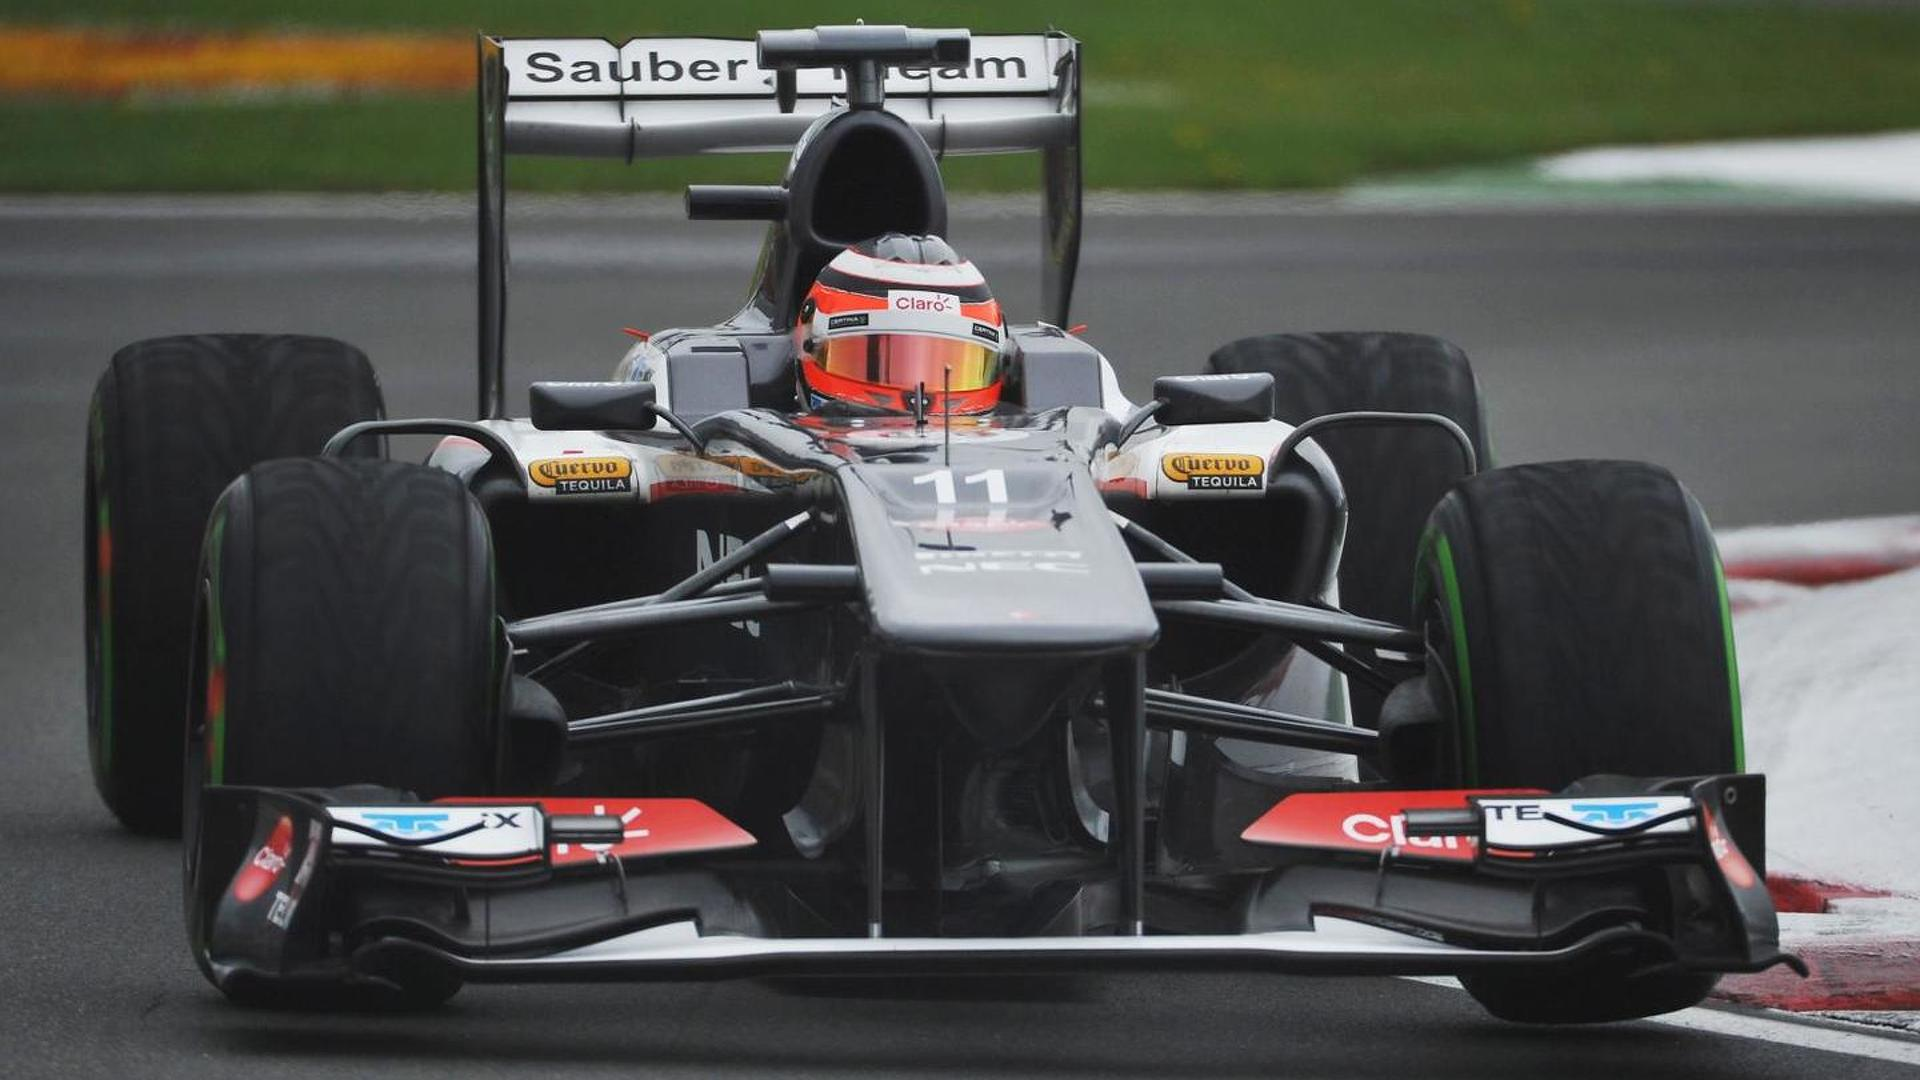 Sauber admits suppliers not being paid